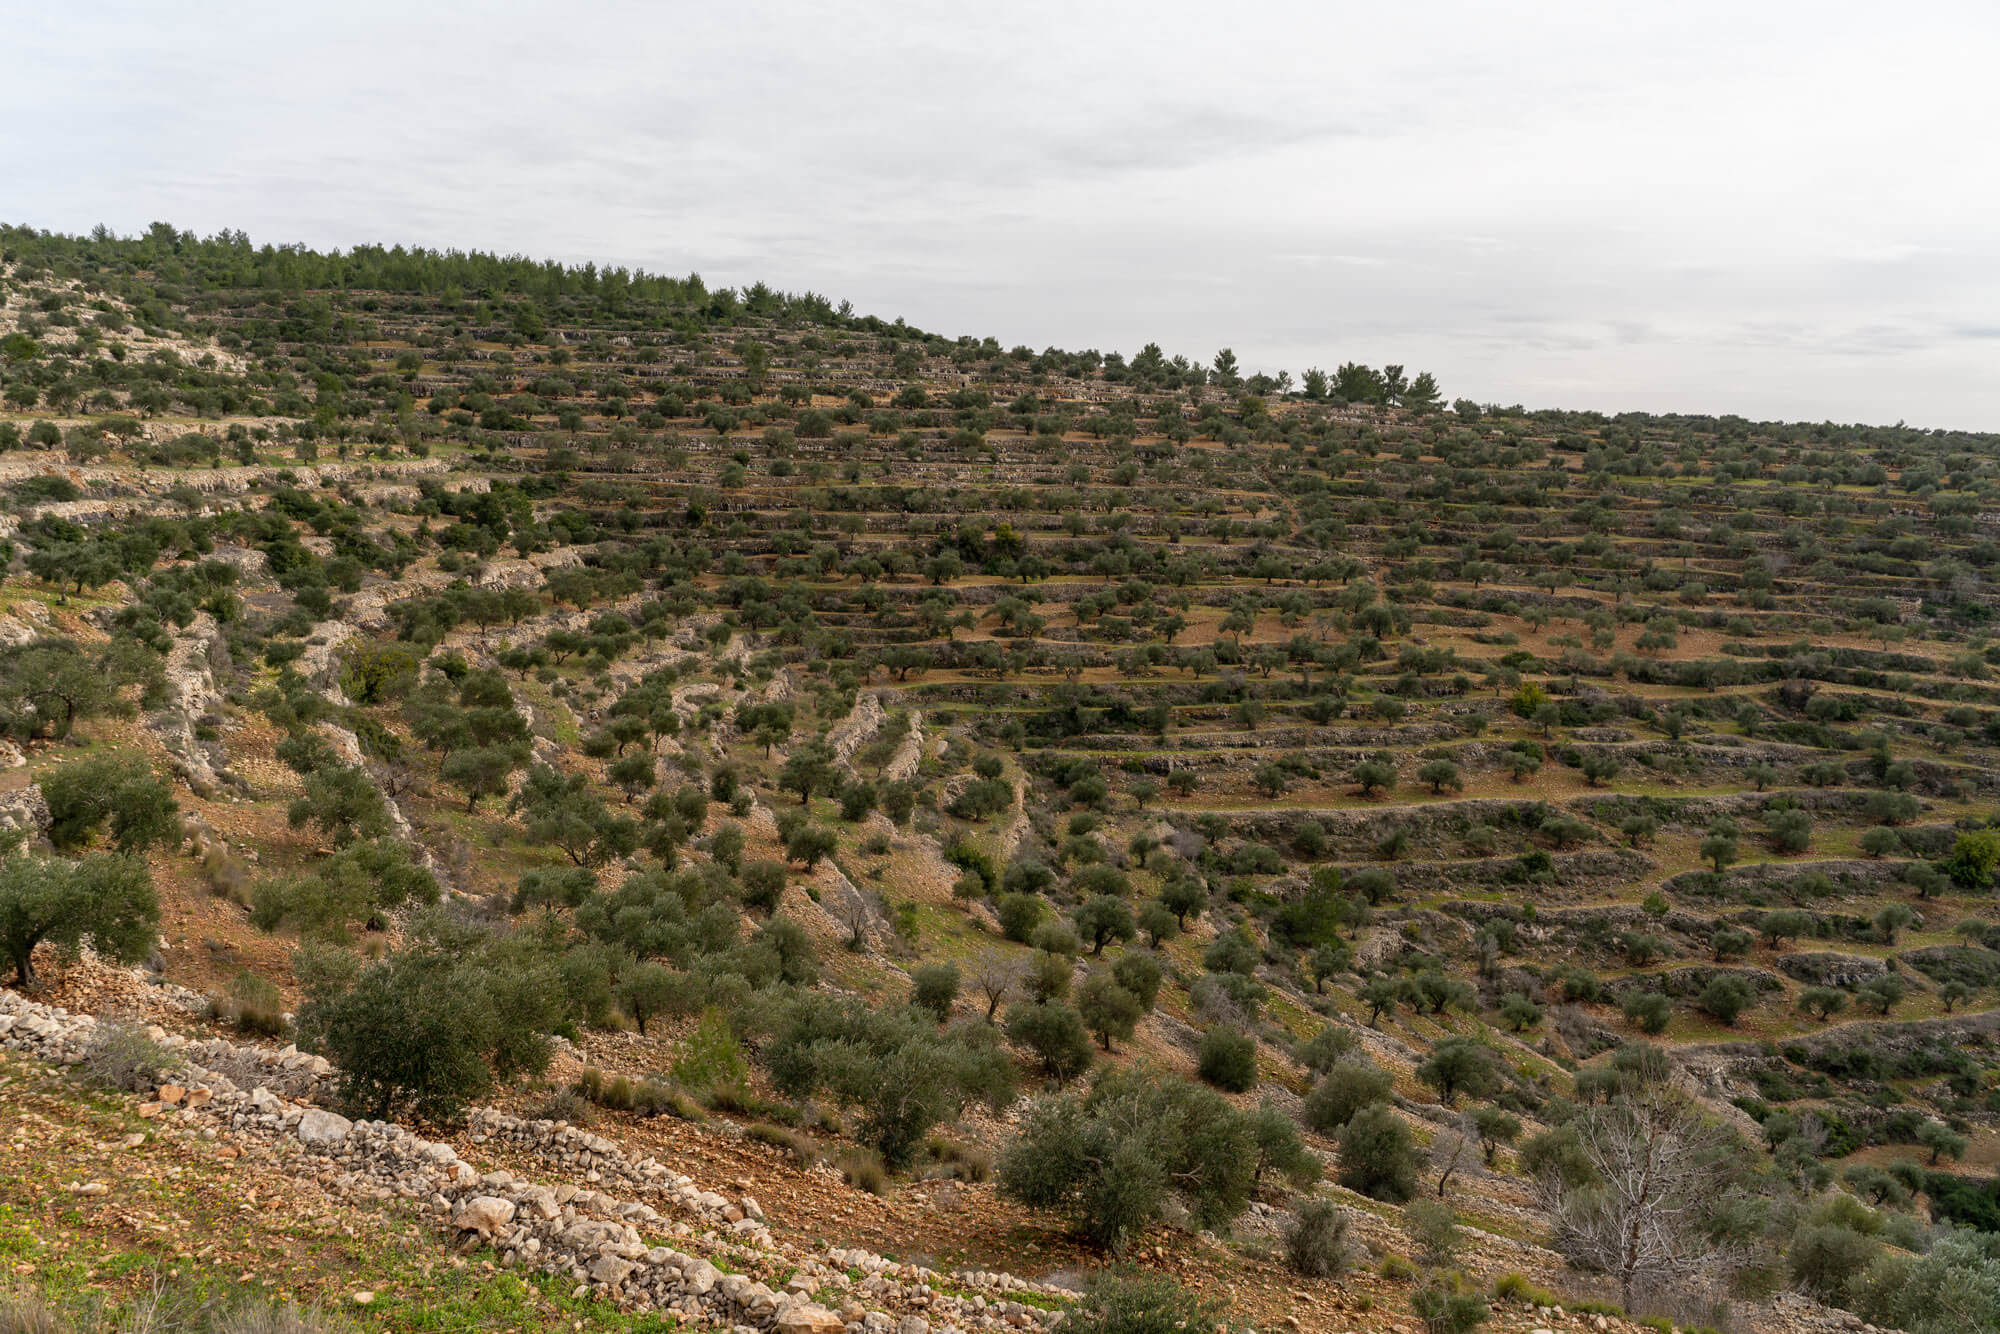 The Olive Field, 2019